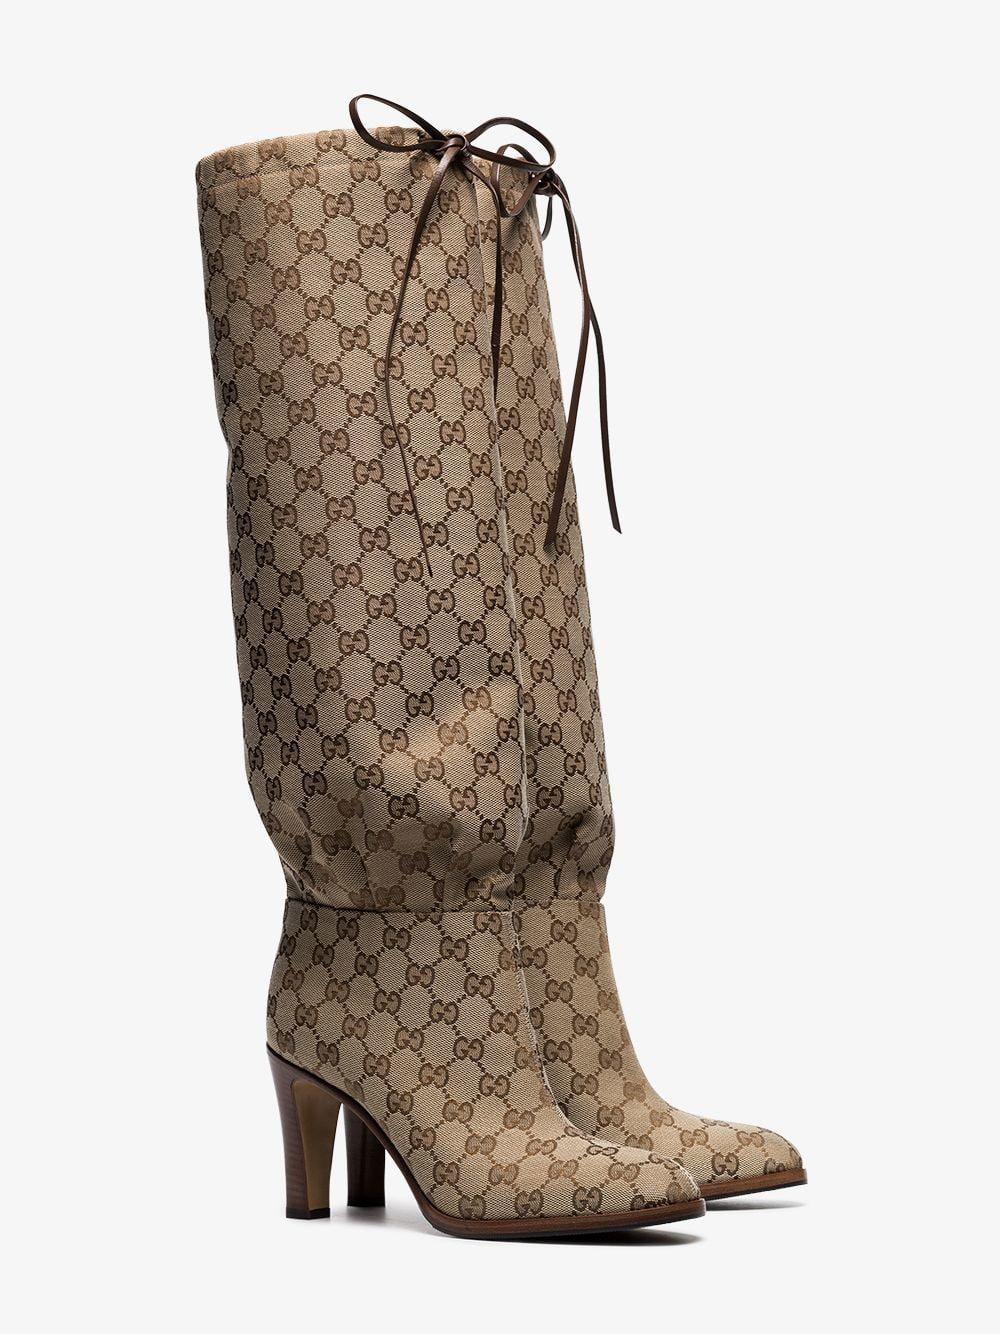 Gucci Original GG Over-the-knee Boots